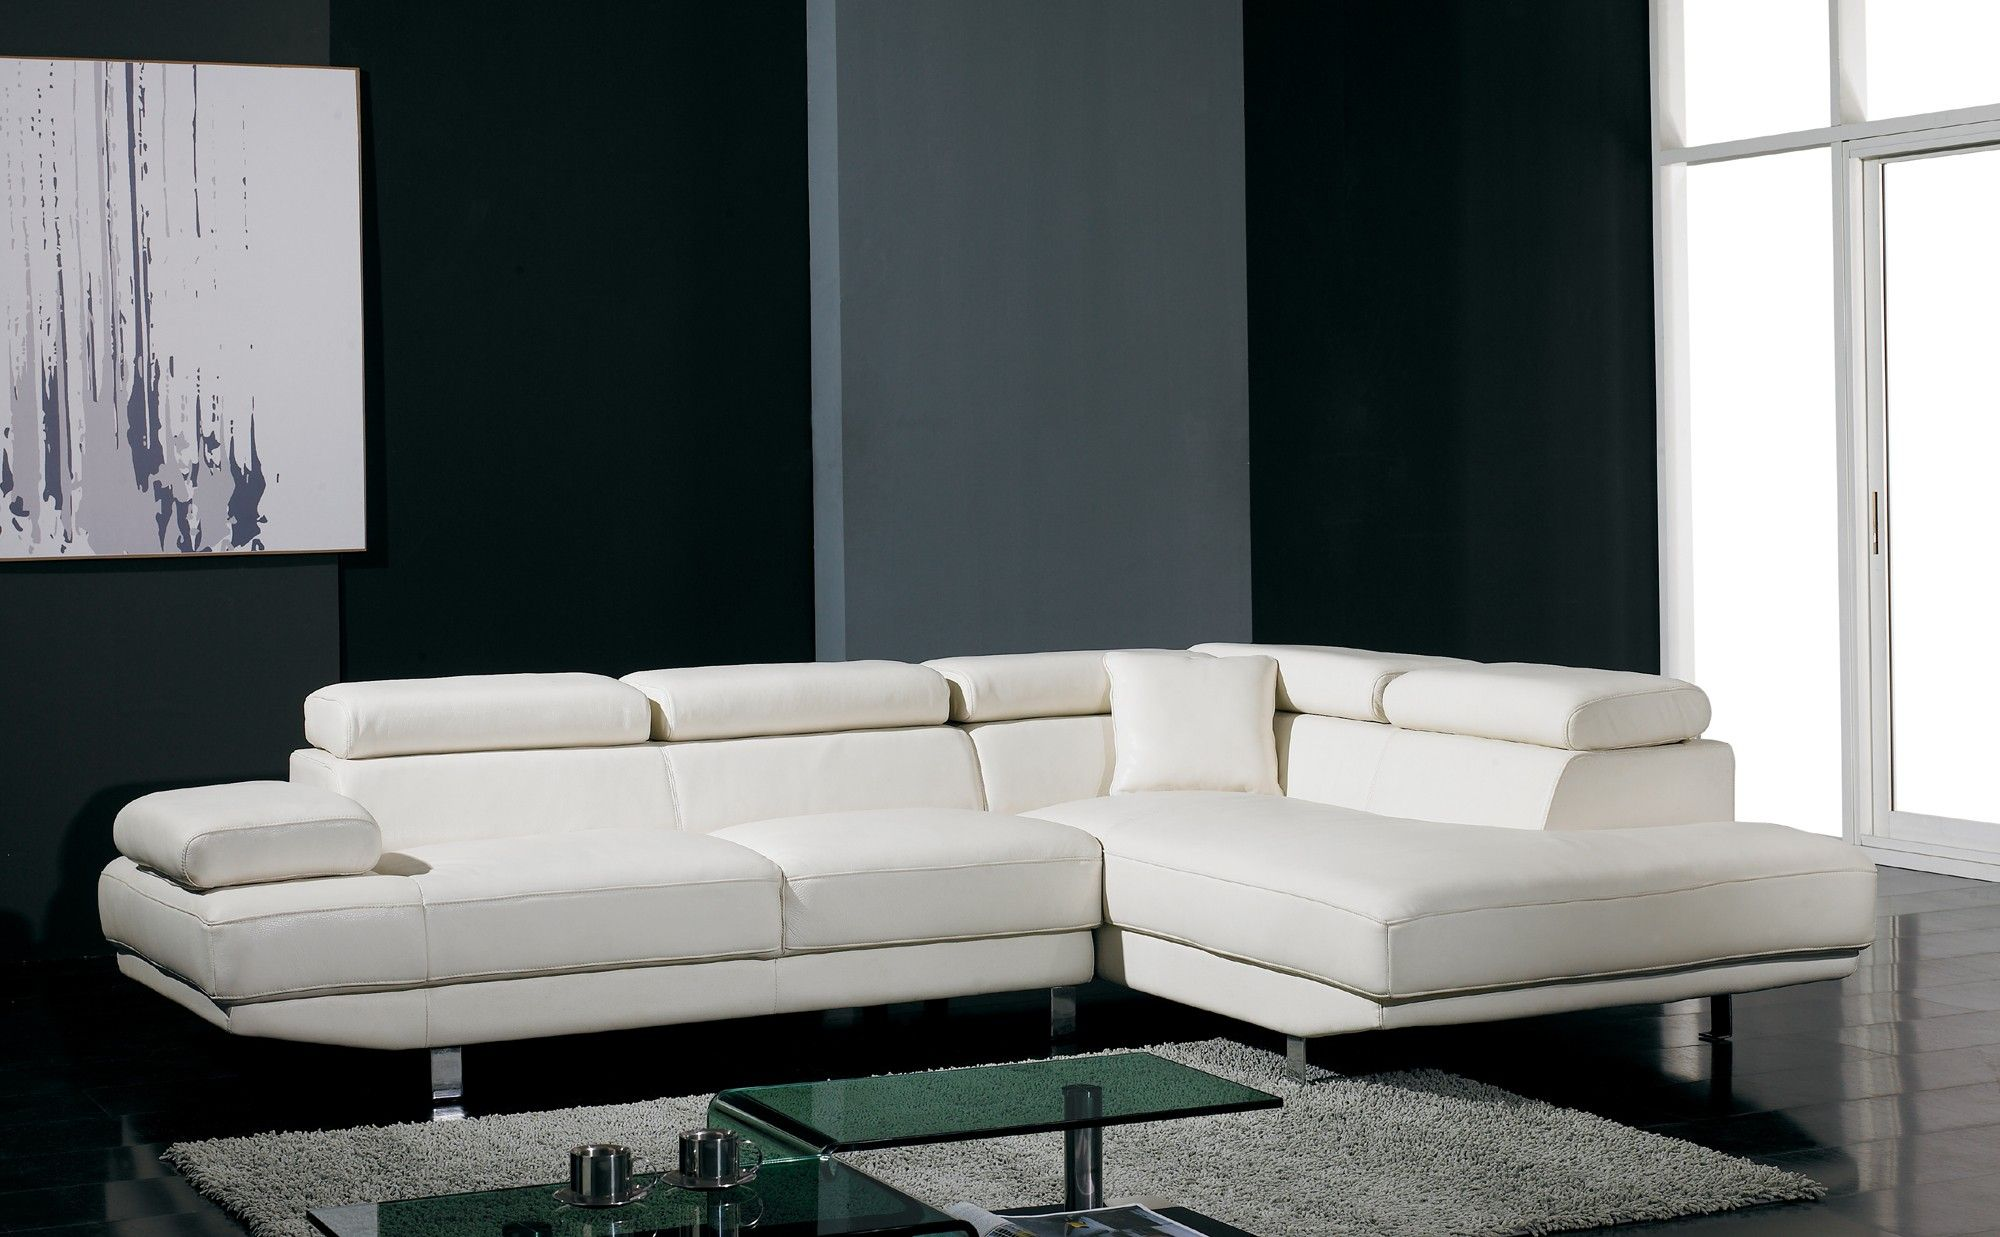 T60 Ultra Modern White Leather Sectional Sofa Of The Week Specials